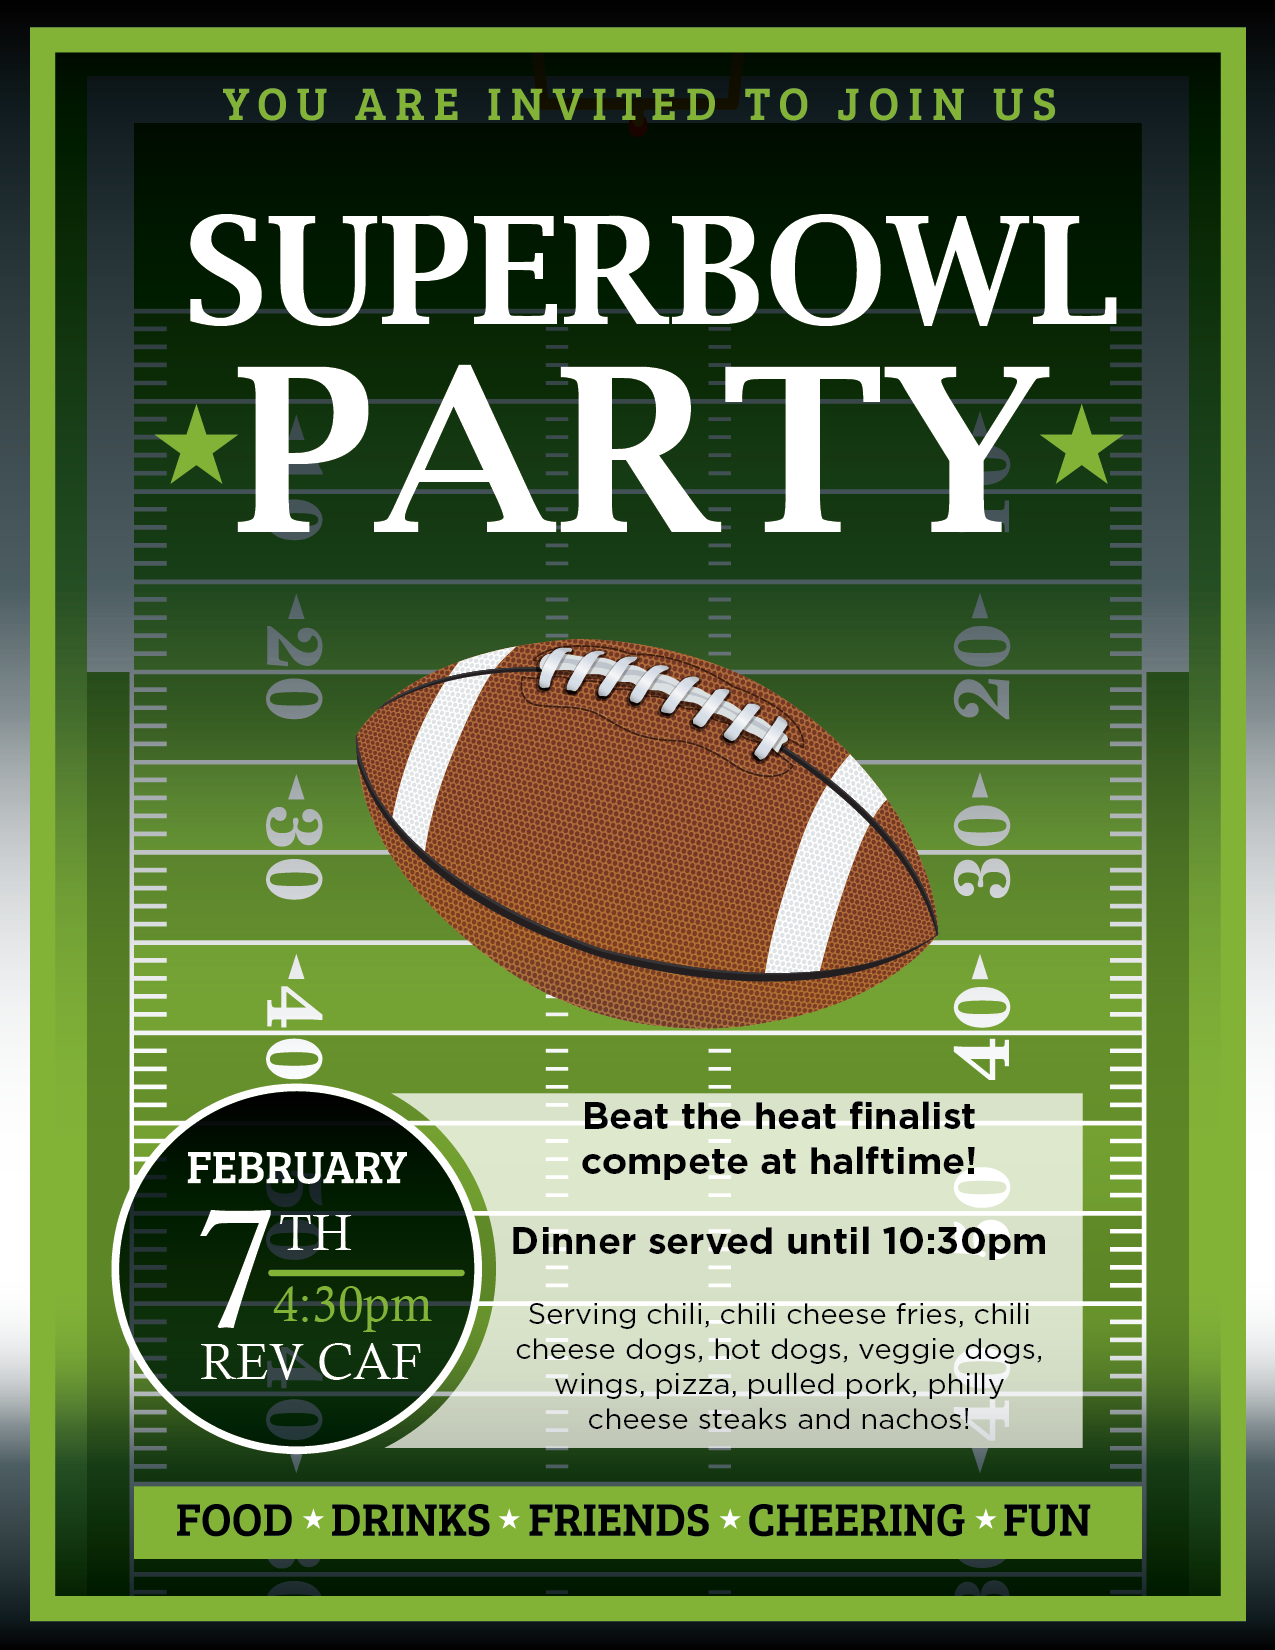 Superbowl party chili, fires, hot dogs & much more!